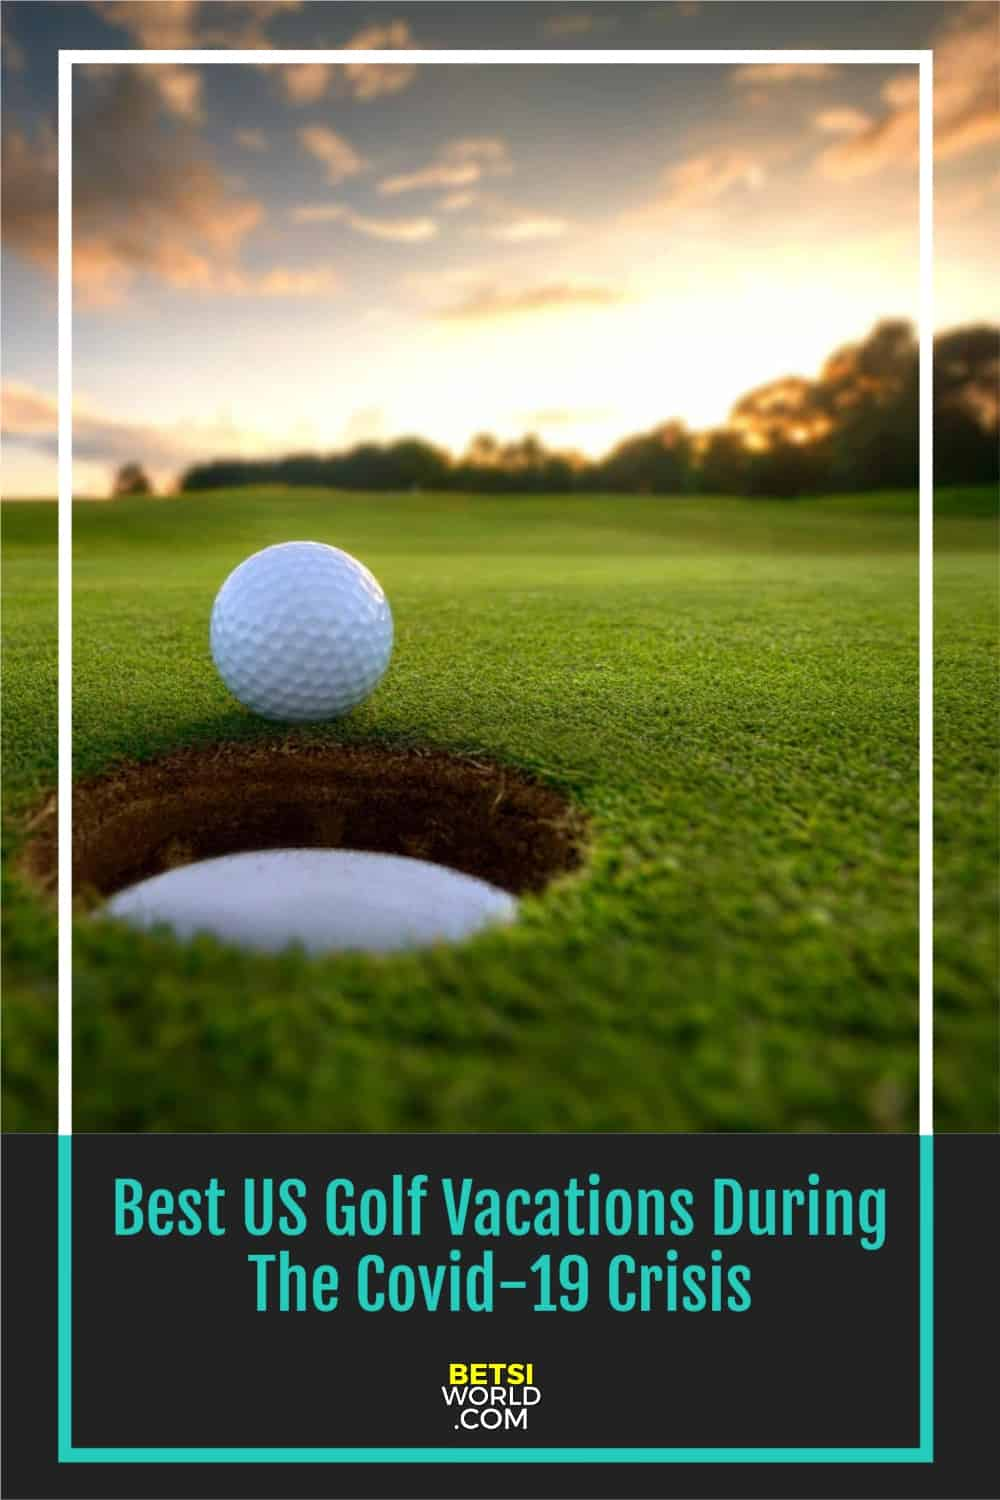 Best US Golf Vacations During The Covid-19 Crisis